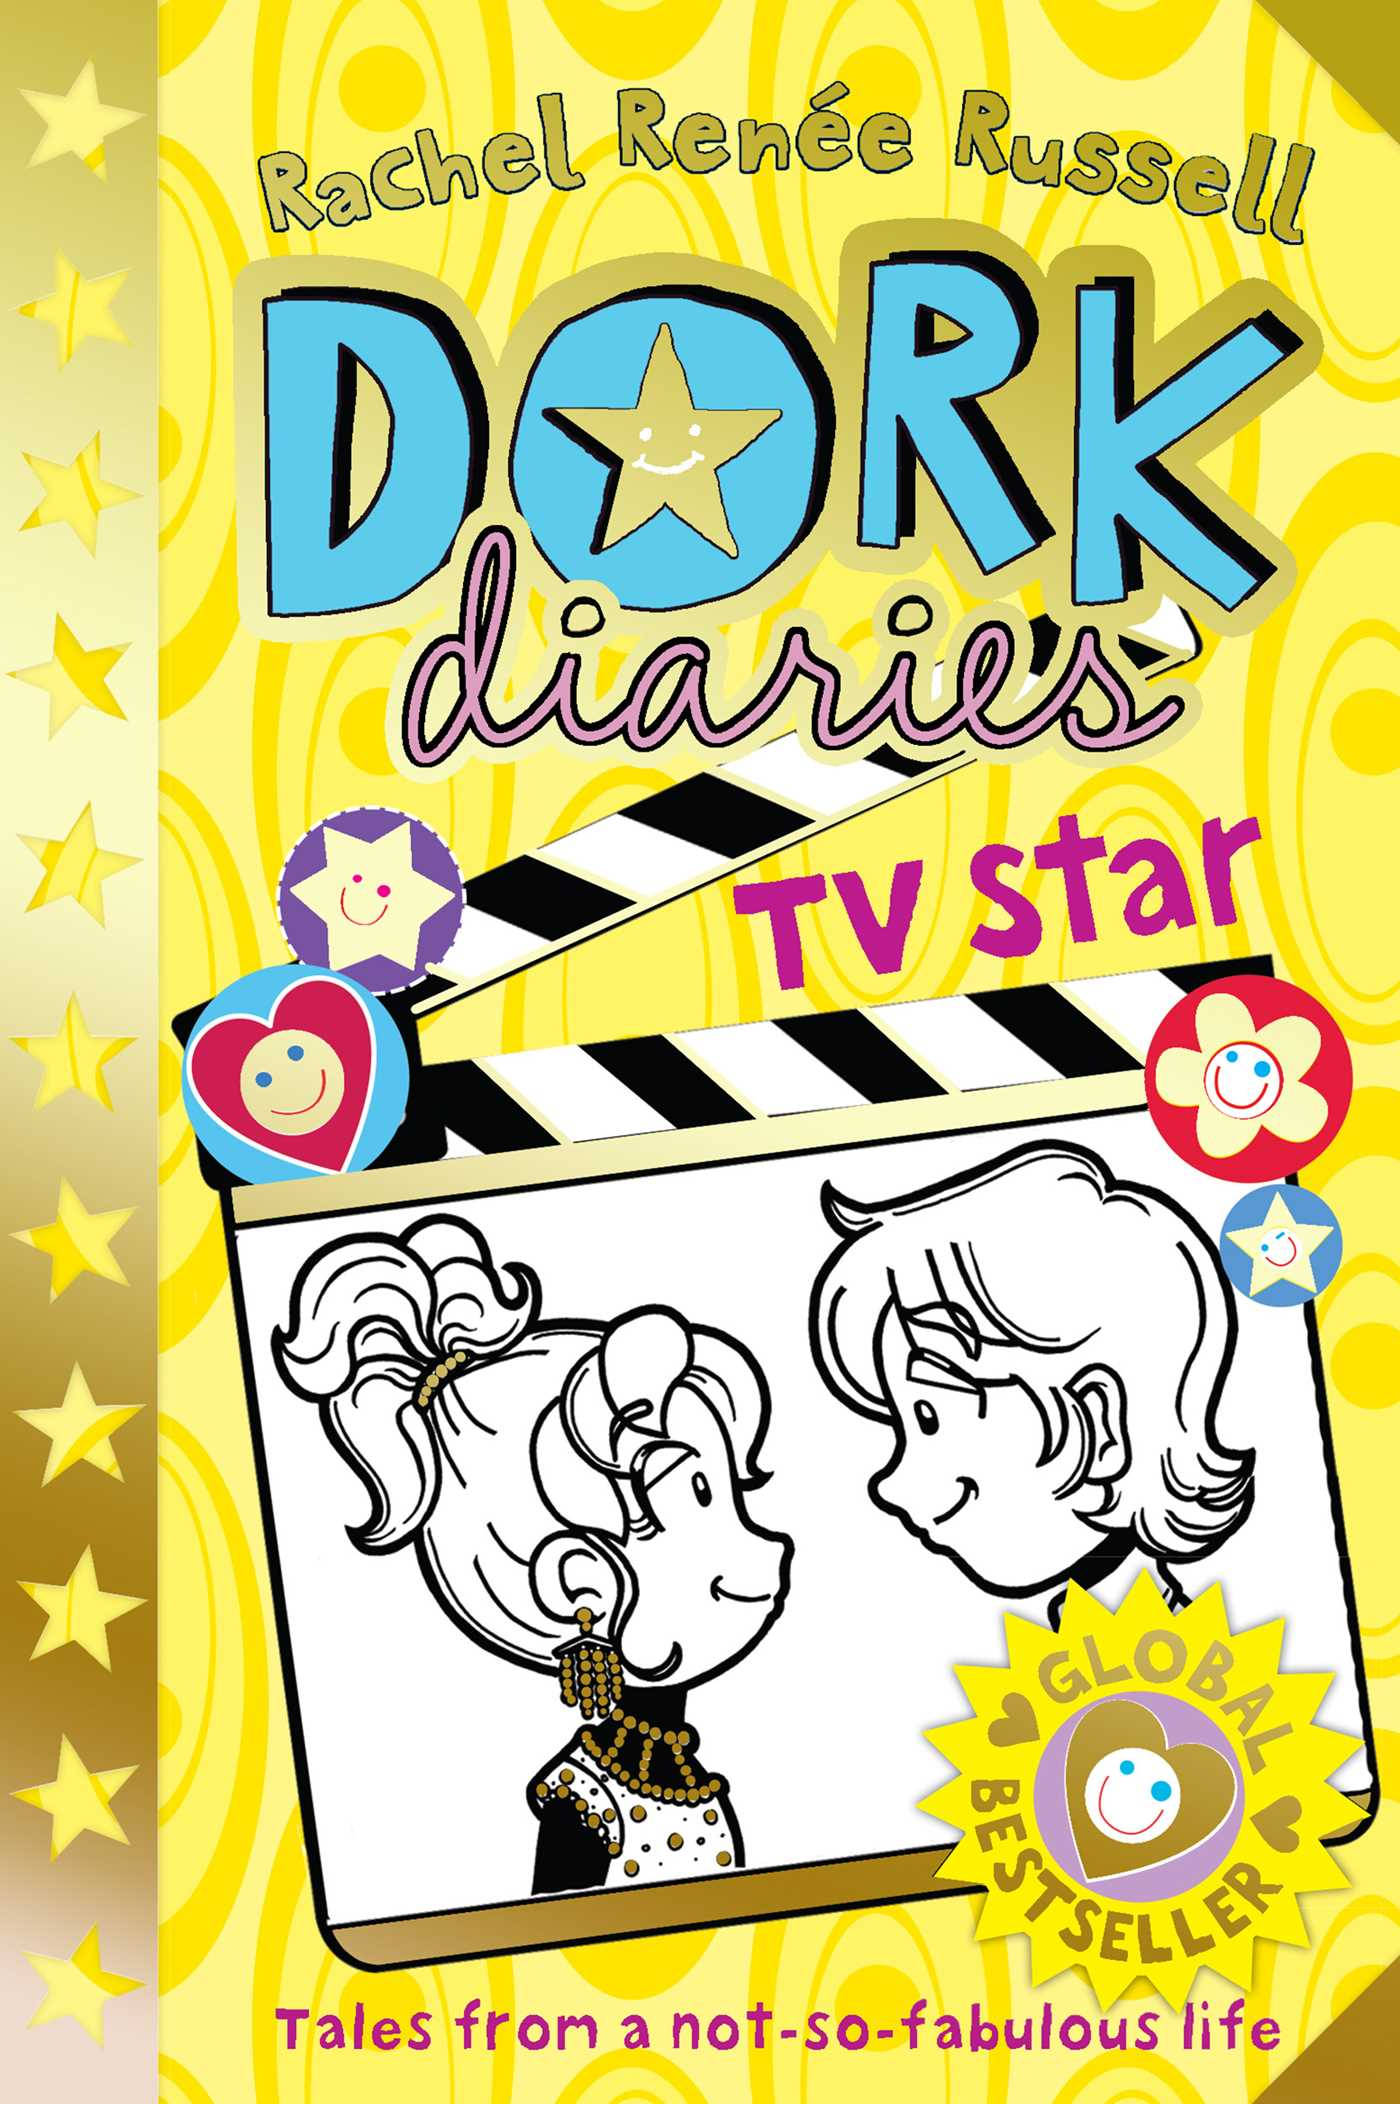 Dork diaries once upon a online dating. how i make 5 figures a month using craigslist for dating.